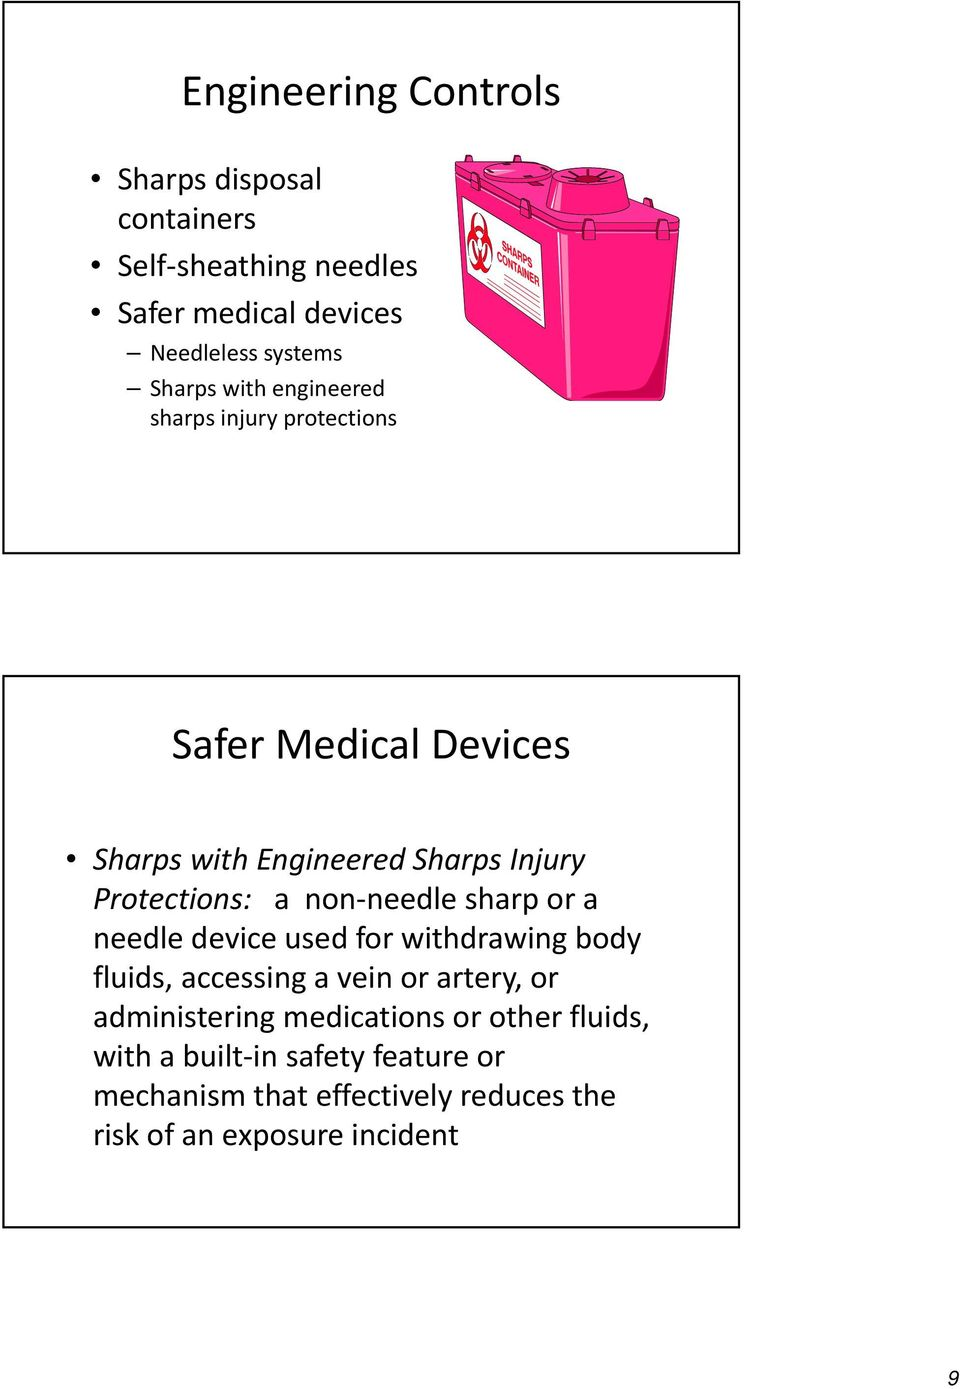 Sharps with EngineeredSharps Injury Protections: a non needle sharp or a needle device used for withdrawing body fluids, accessing a vein or